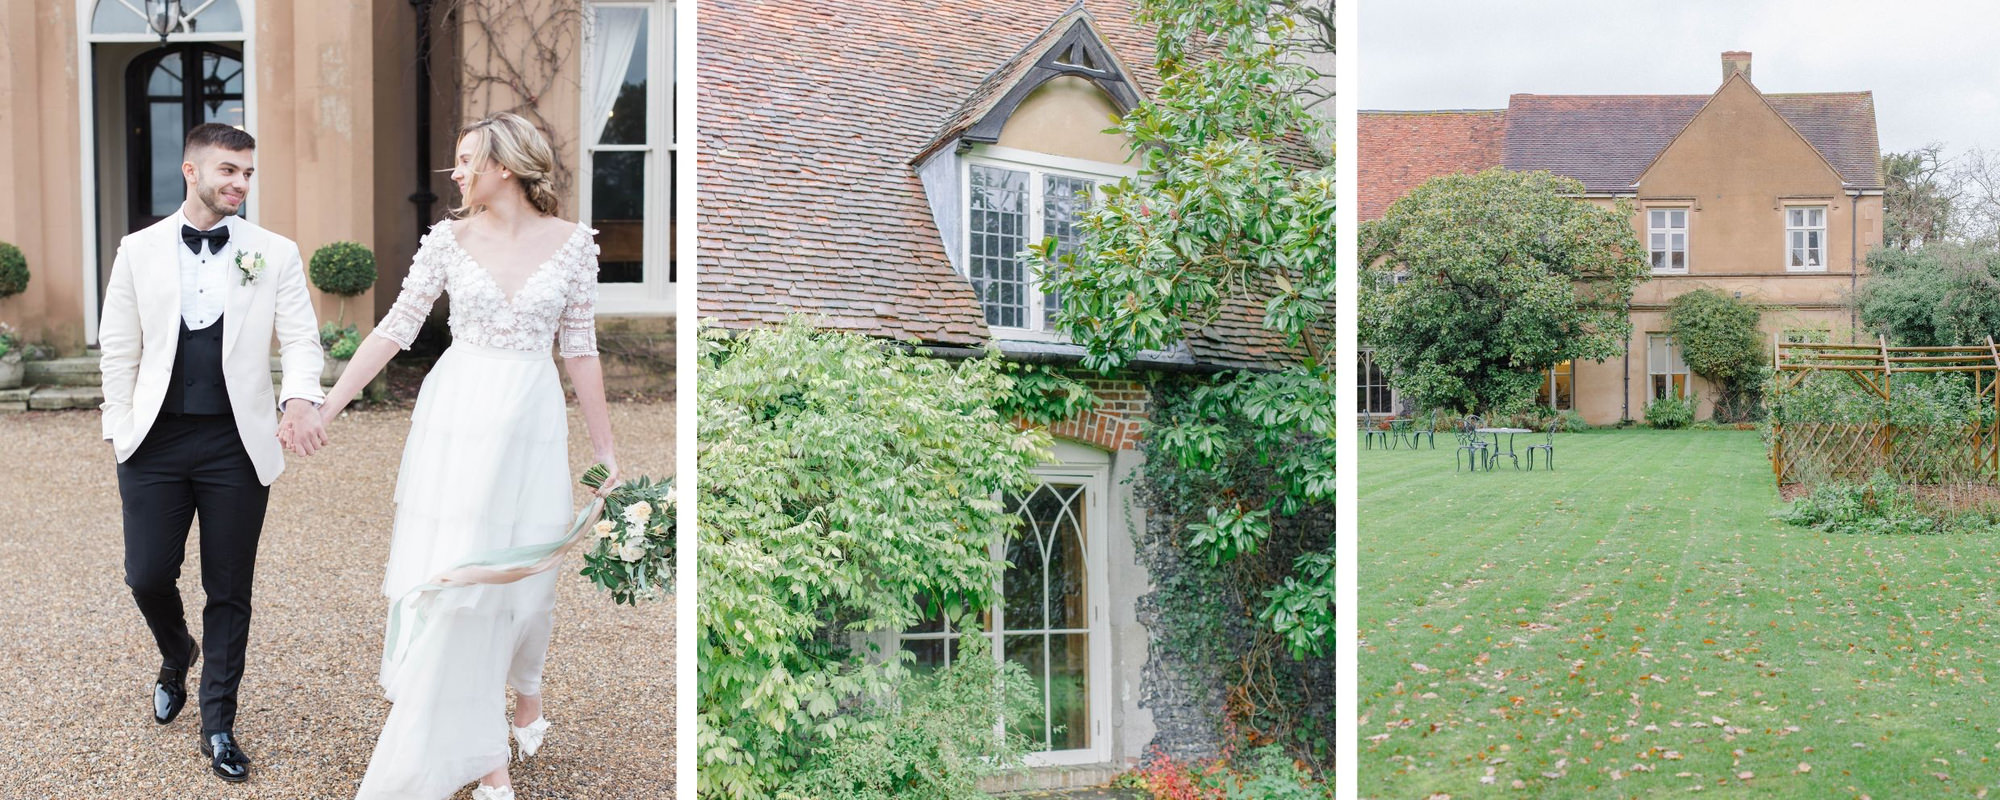 bride and groom at countryside wedding venue in Kent